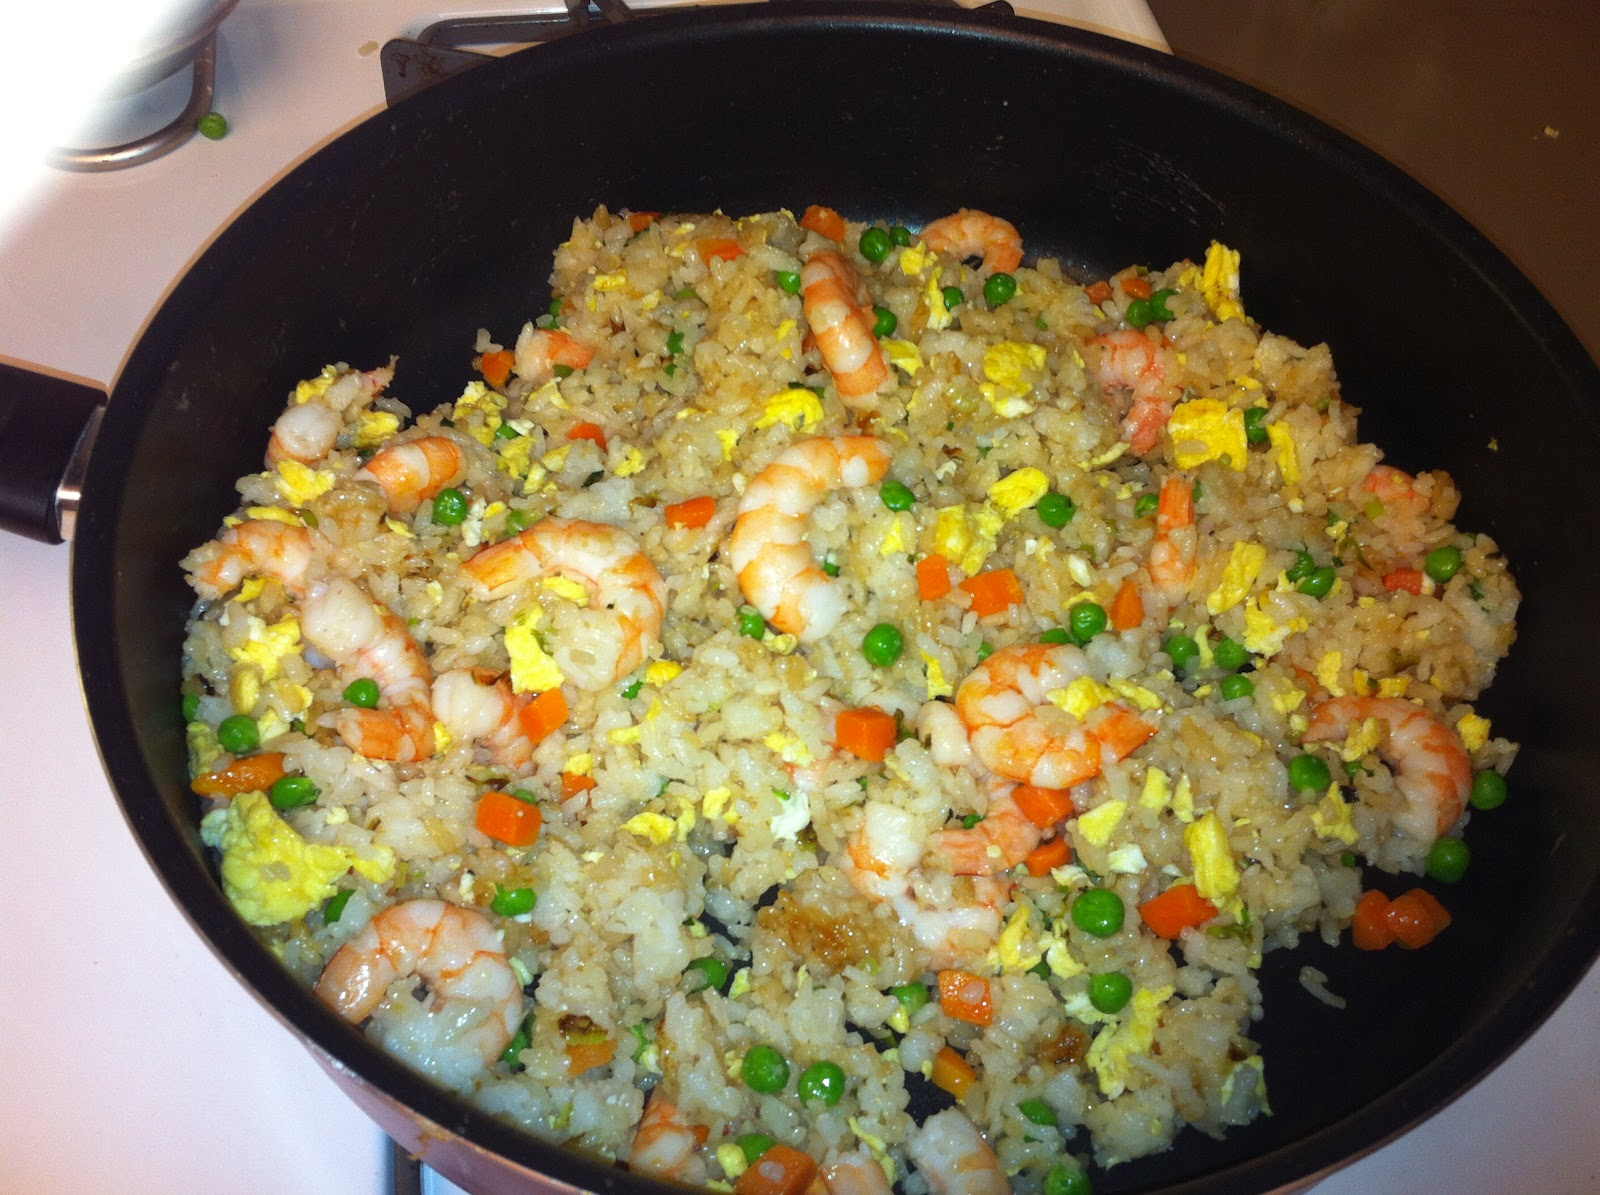 Adventures of a Semper Fi Family: In the Kitchen: Shrimp Fried Rice